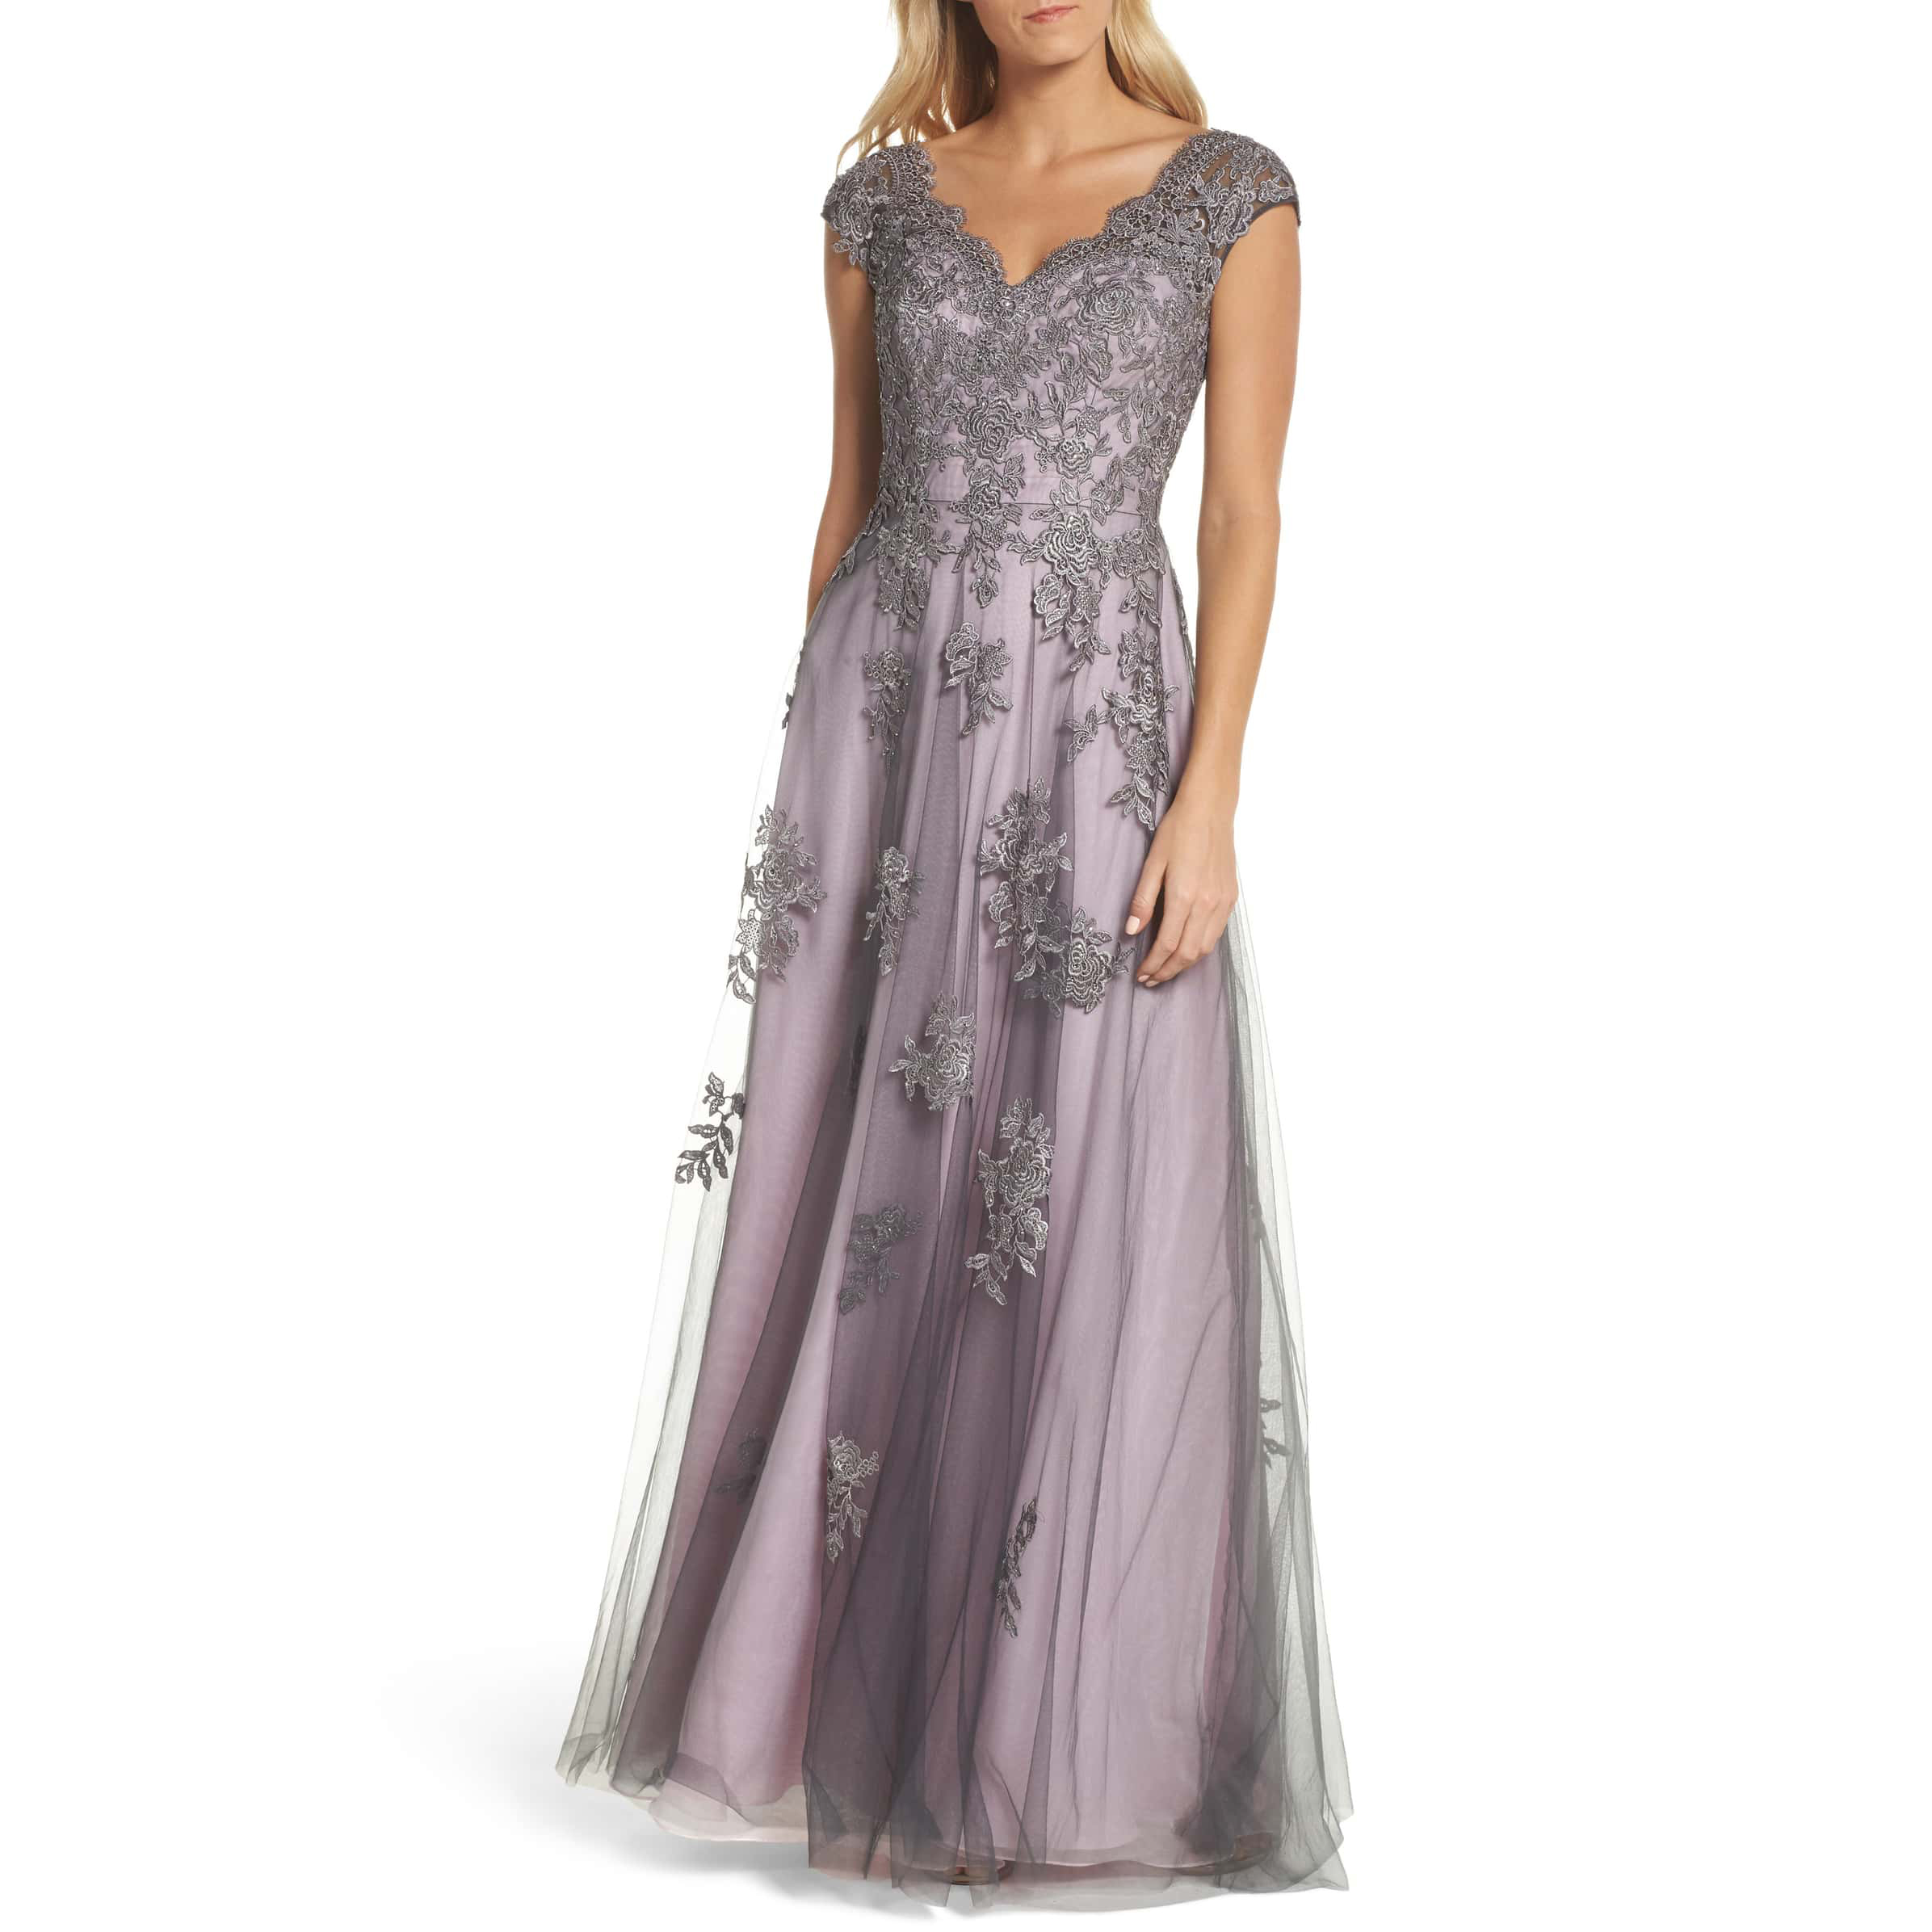 a6fa76a41a7a0 colorful wedding gowns La Femme Embellished Mesh A-Line Gown dove gray pale  pink nordstrom